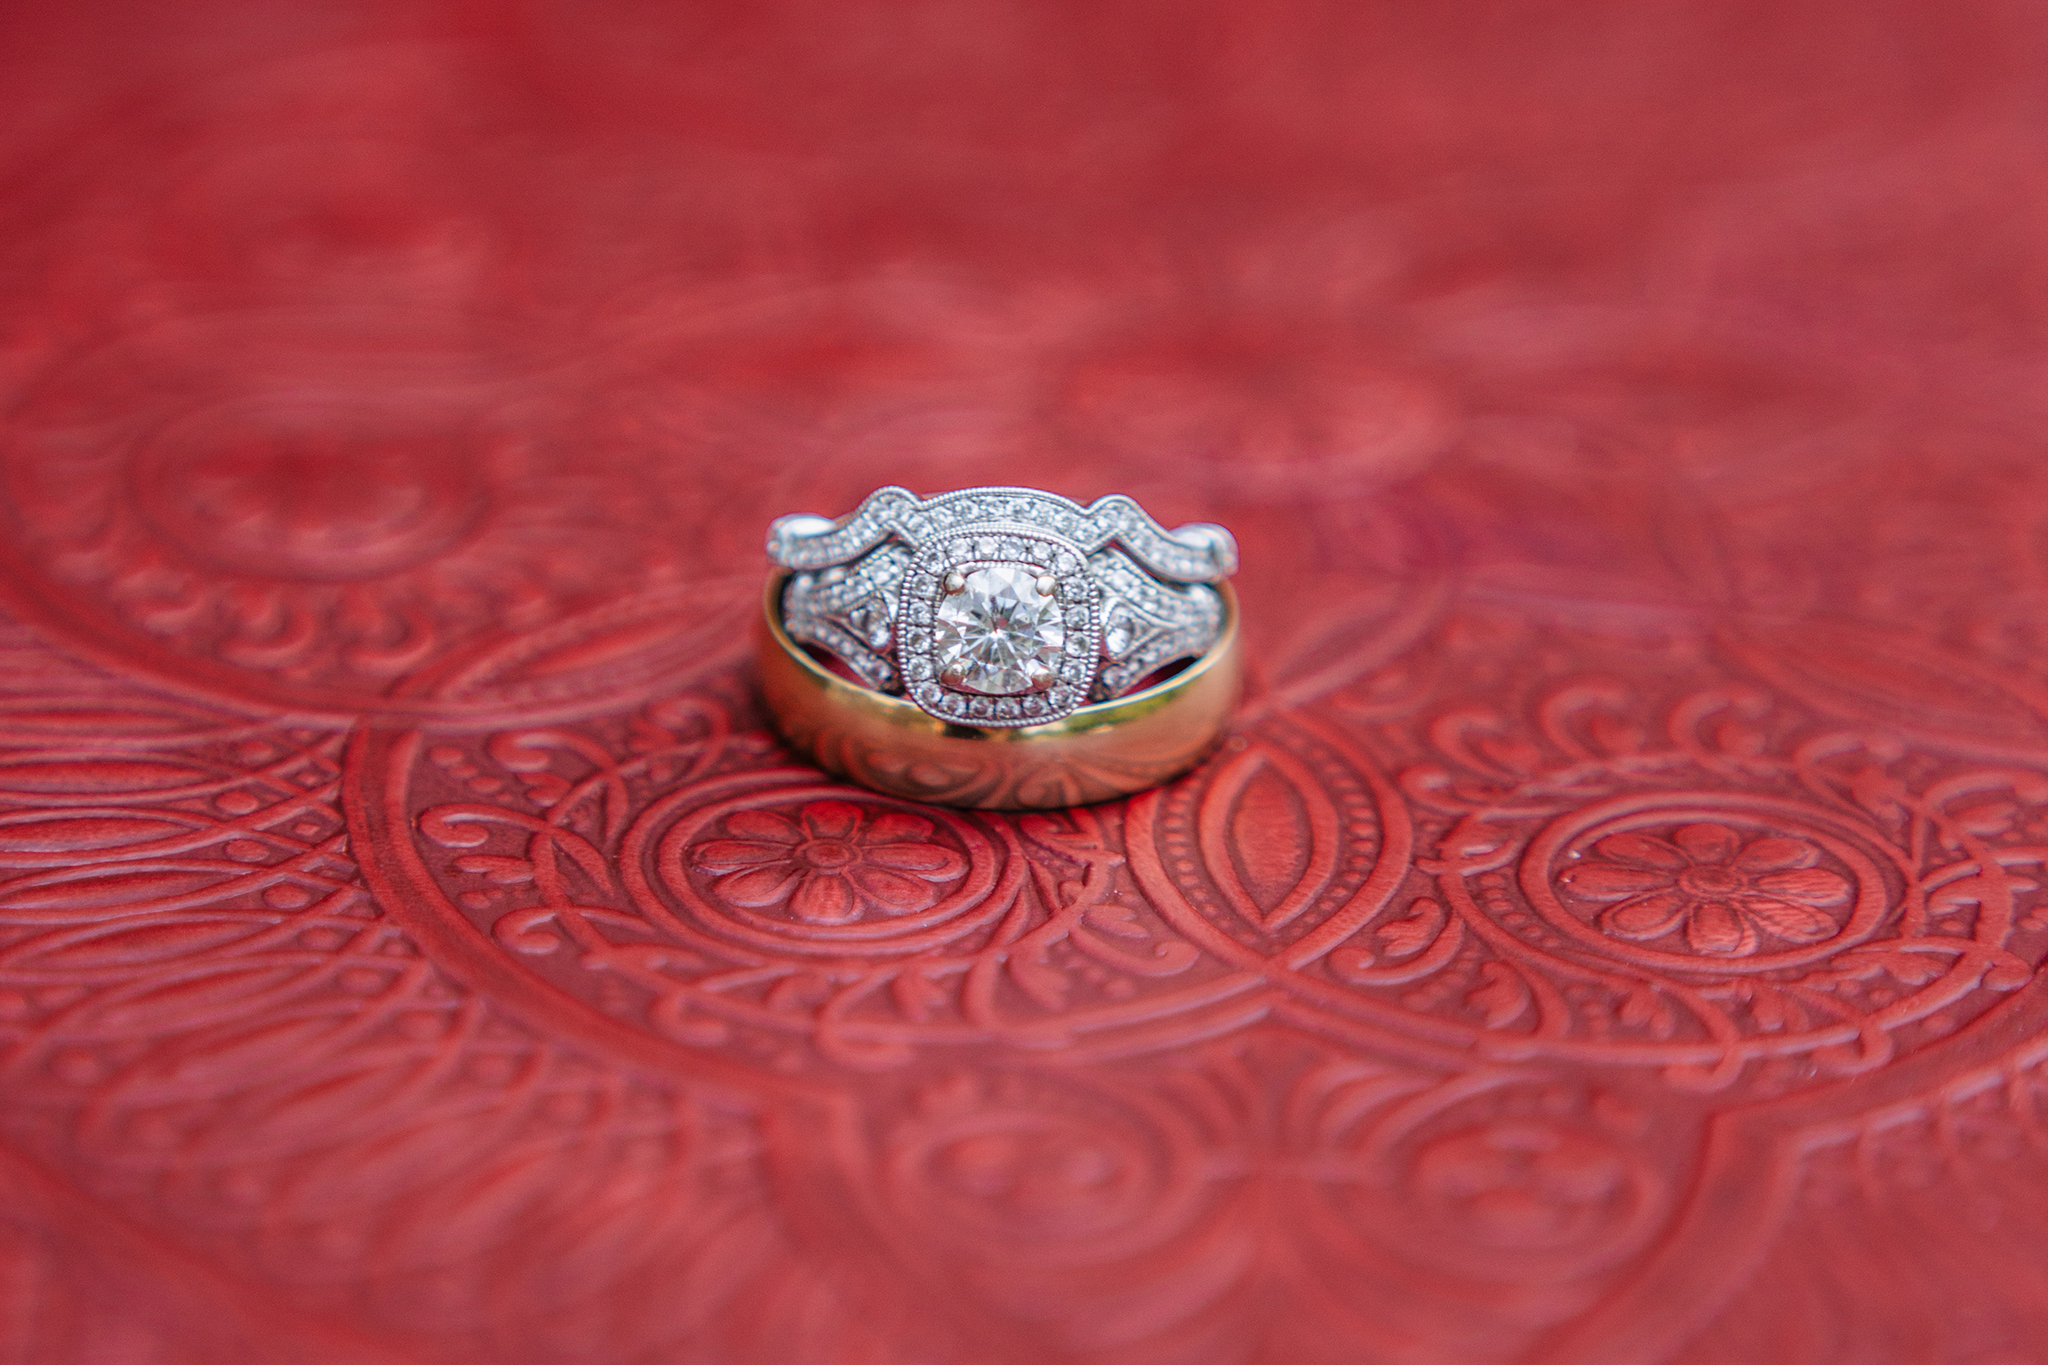 photography by mallory - wedding ring photography.jpg